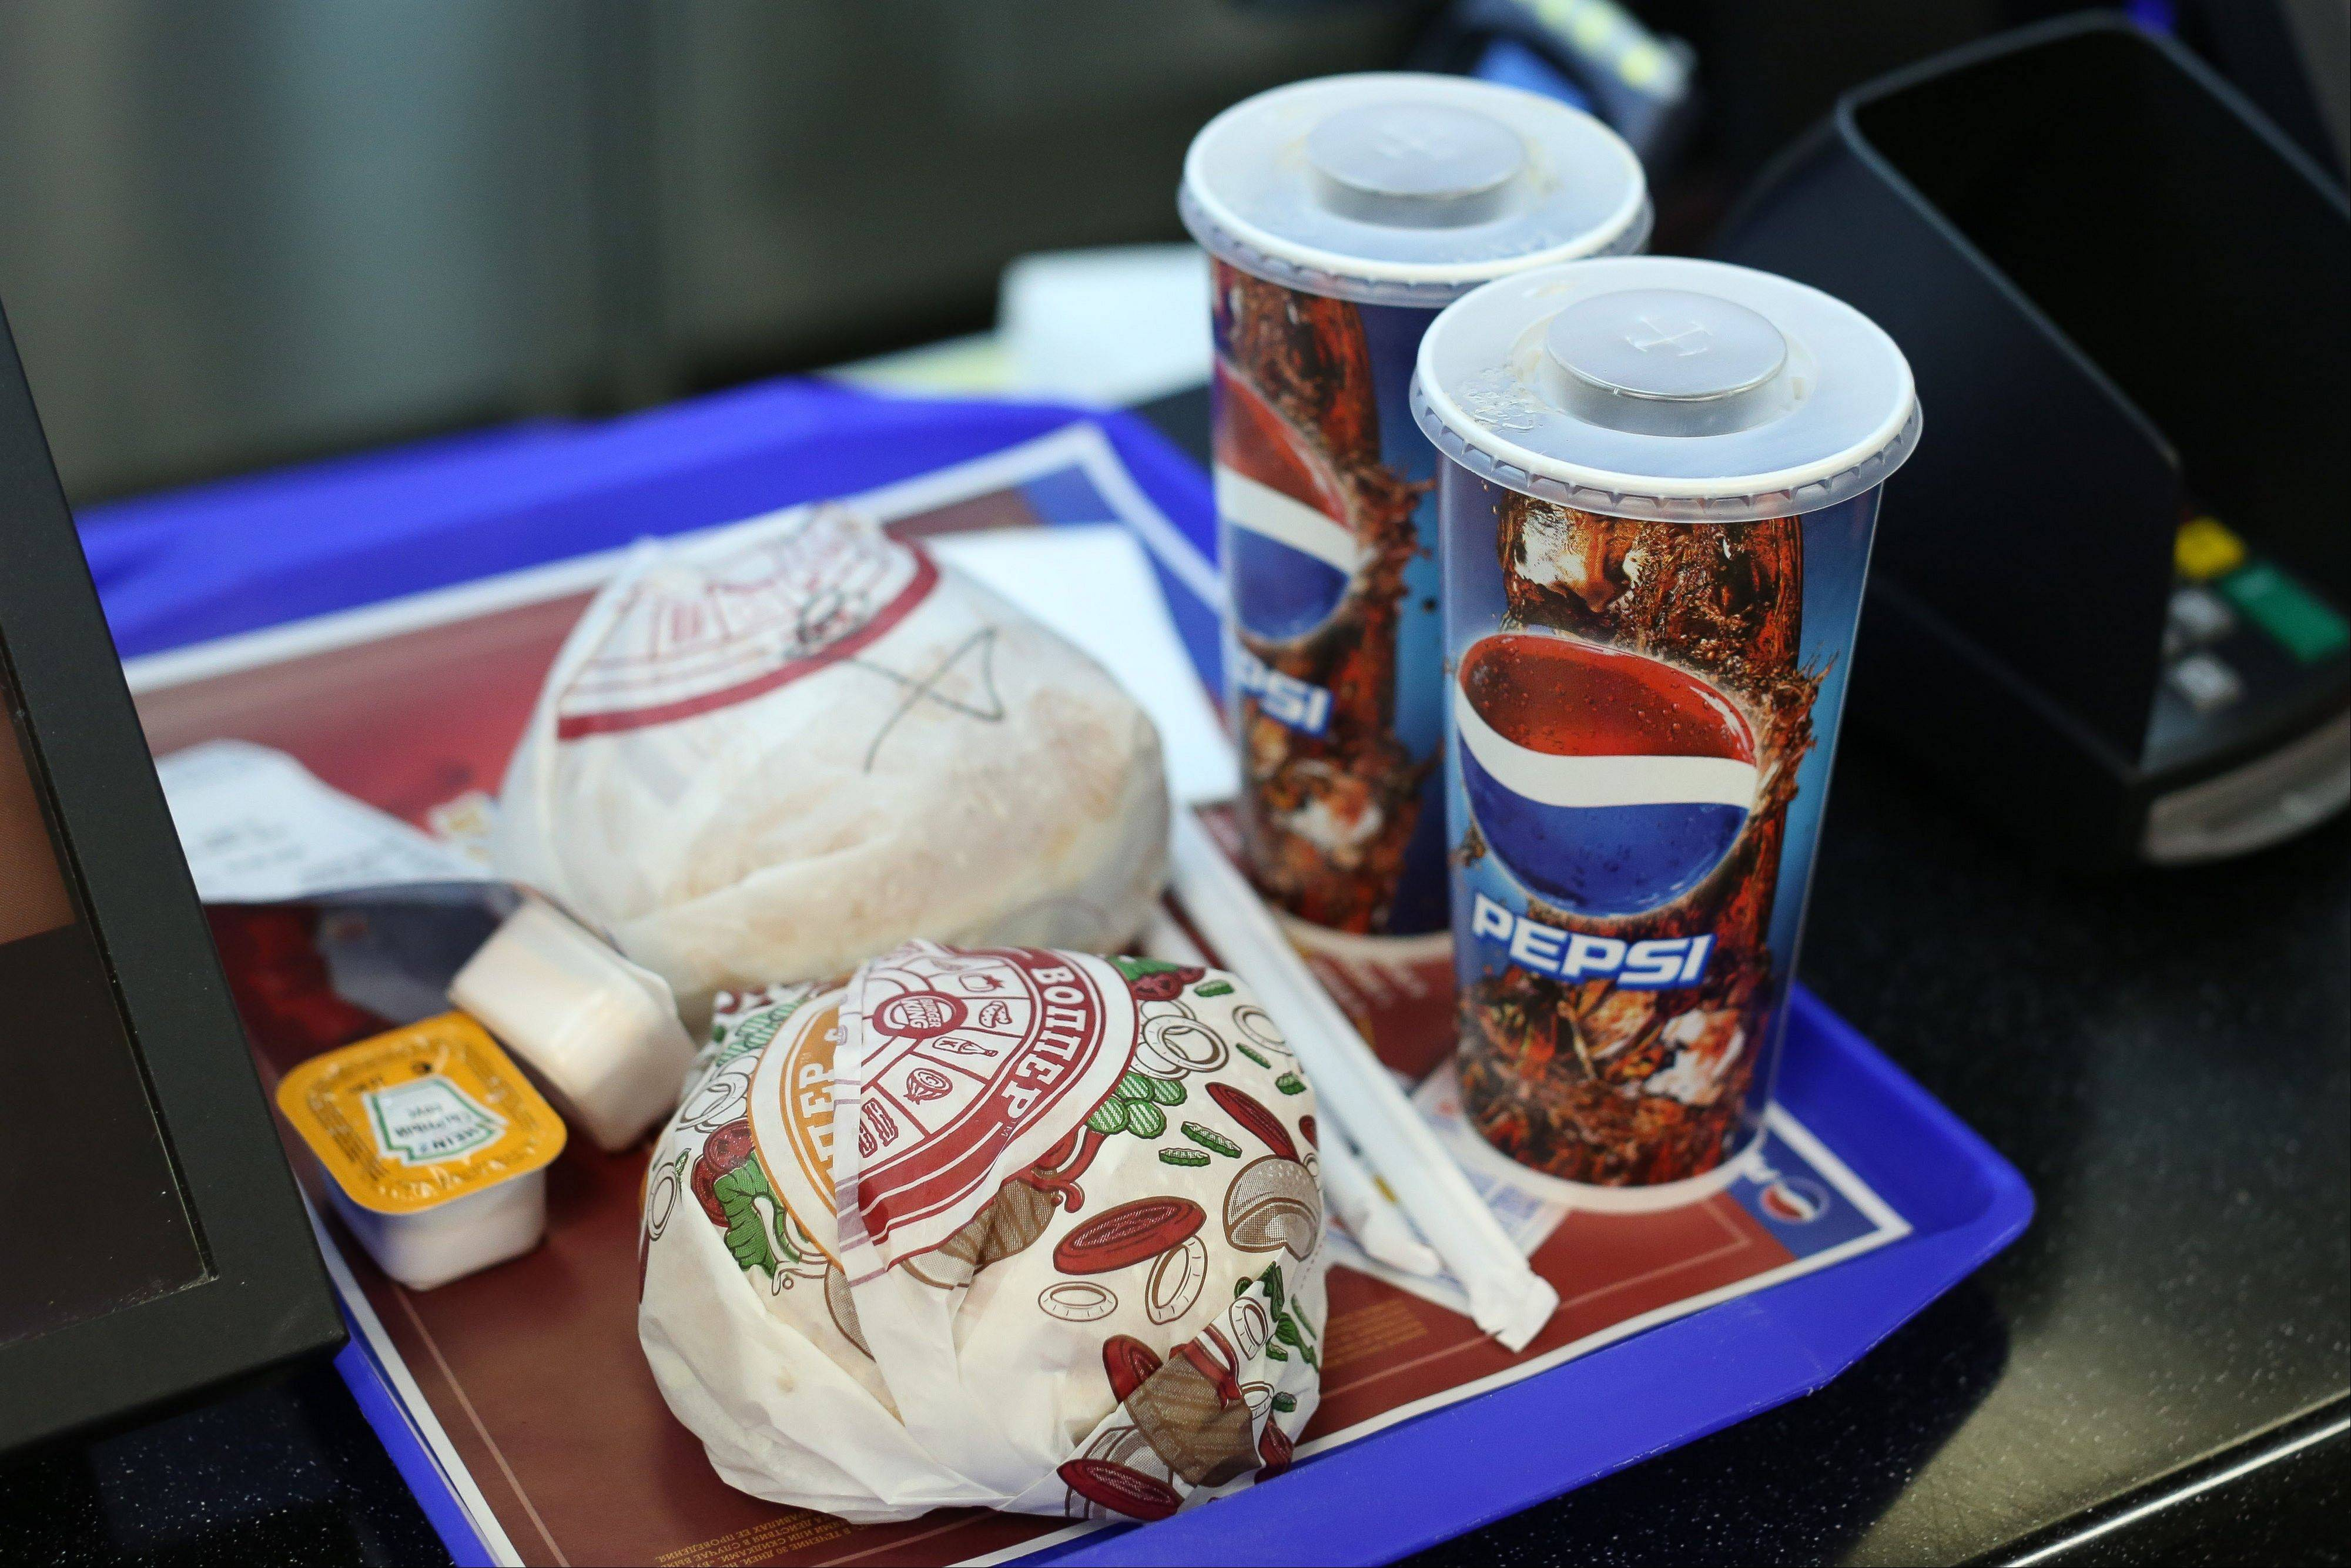 A burger king meal, which includes hamburgers and Pepsi soft drinks, sits on a tray inside a Burger King fast food restaurant in Moscow, Russia.